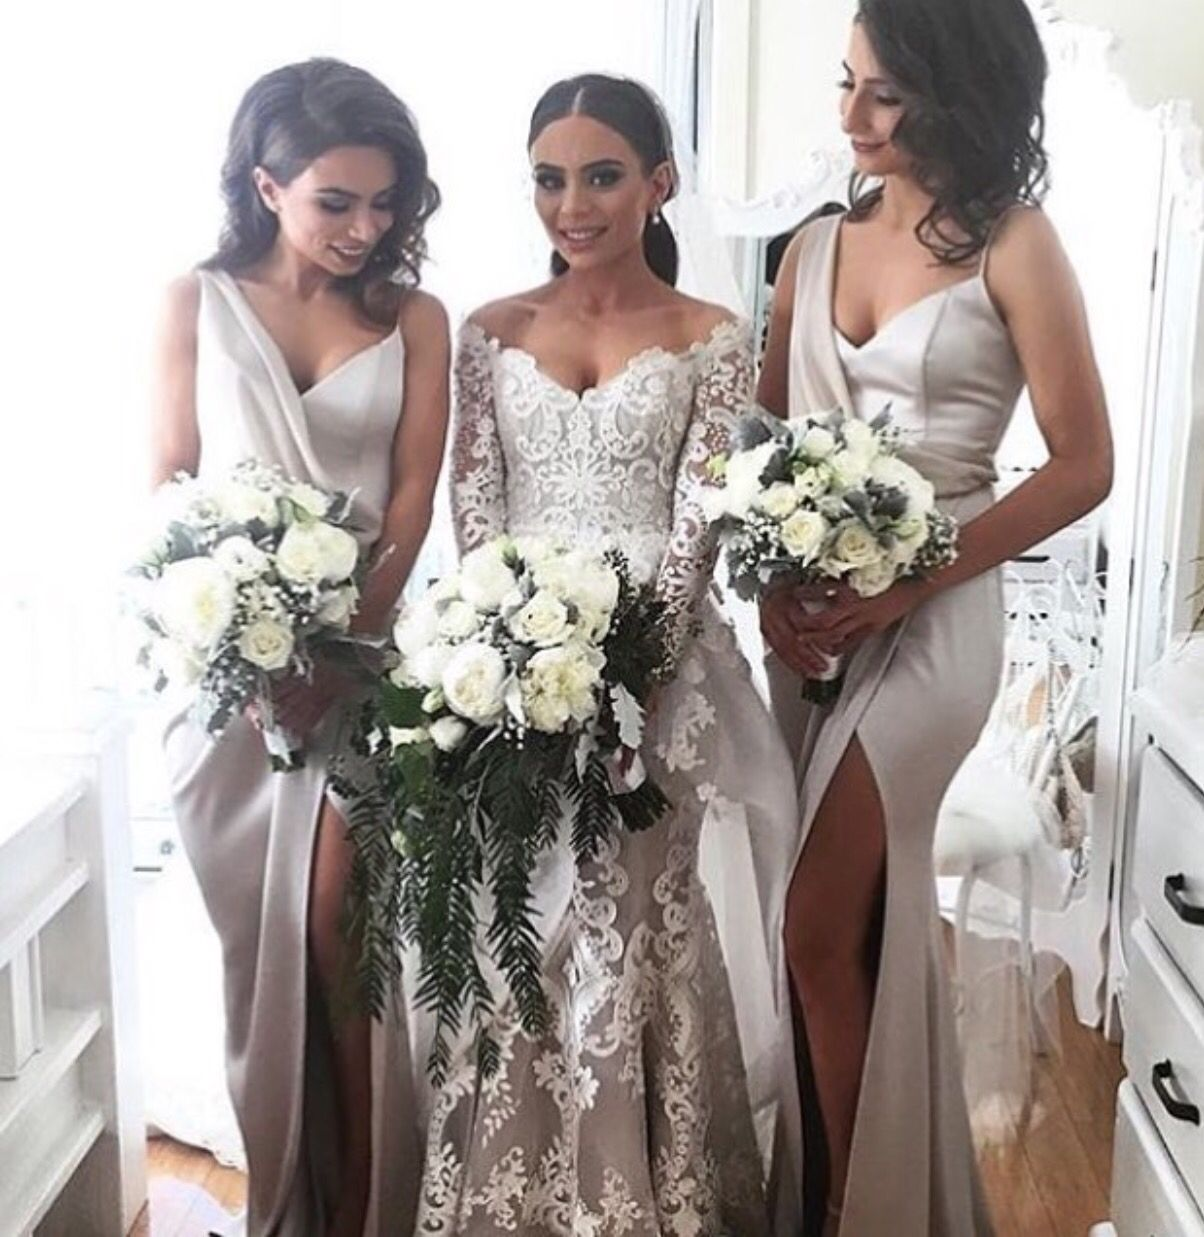 Unusual bridesmaid dresses one day pinterest bridal unusual bridesmaid dresses ombrellifo Choice Image